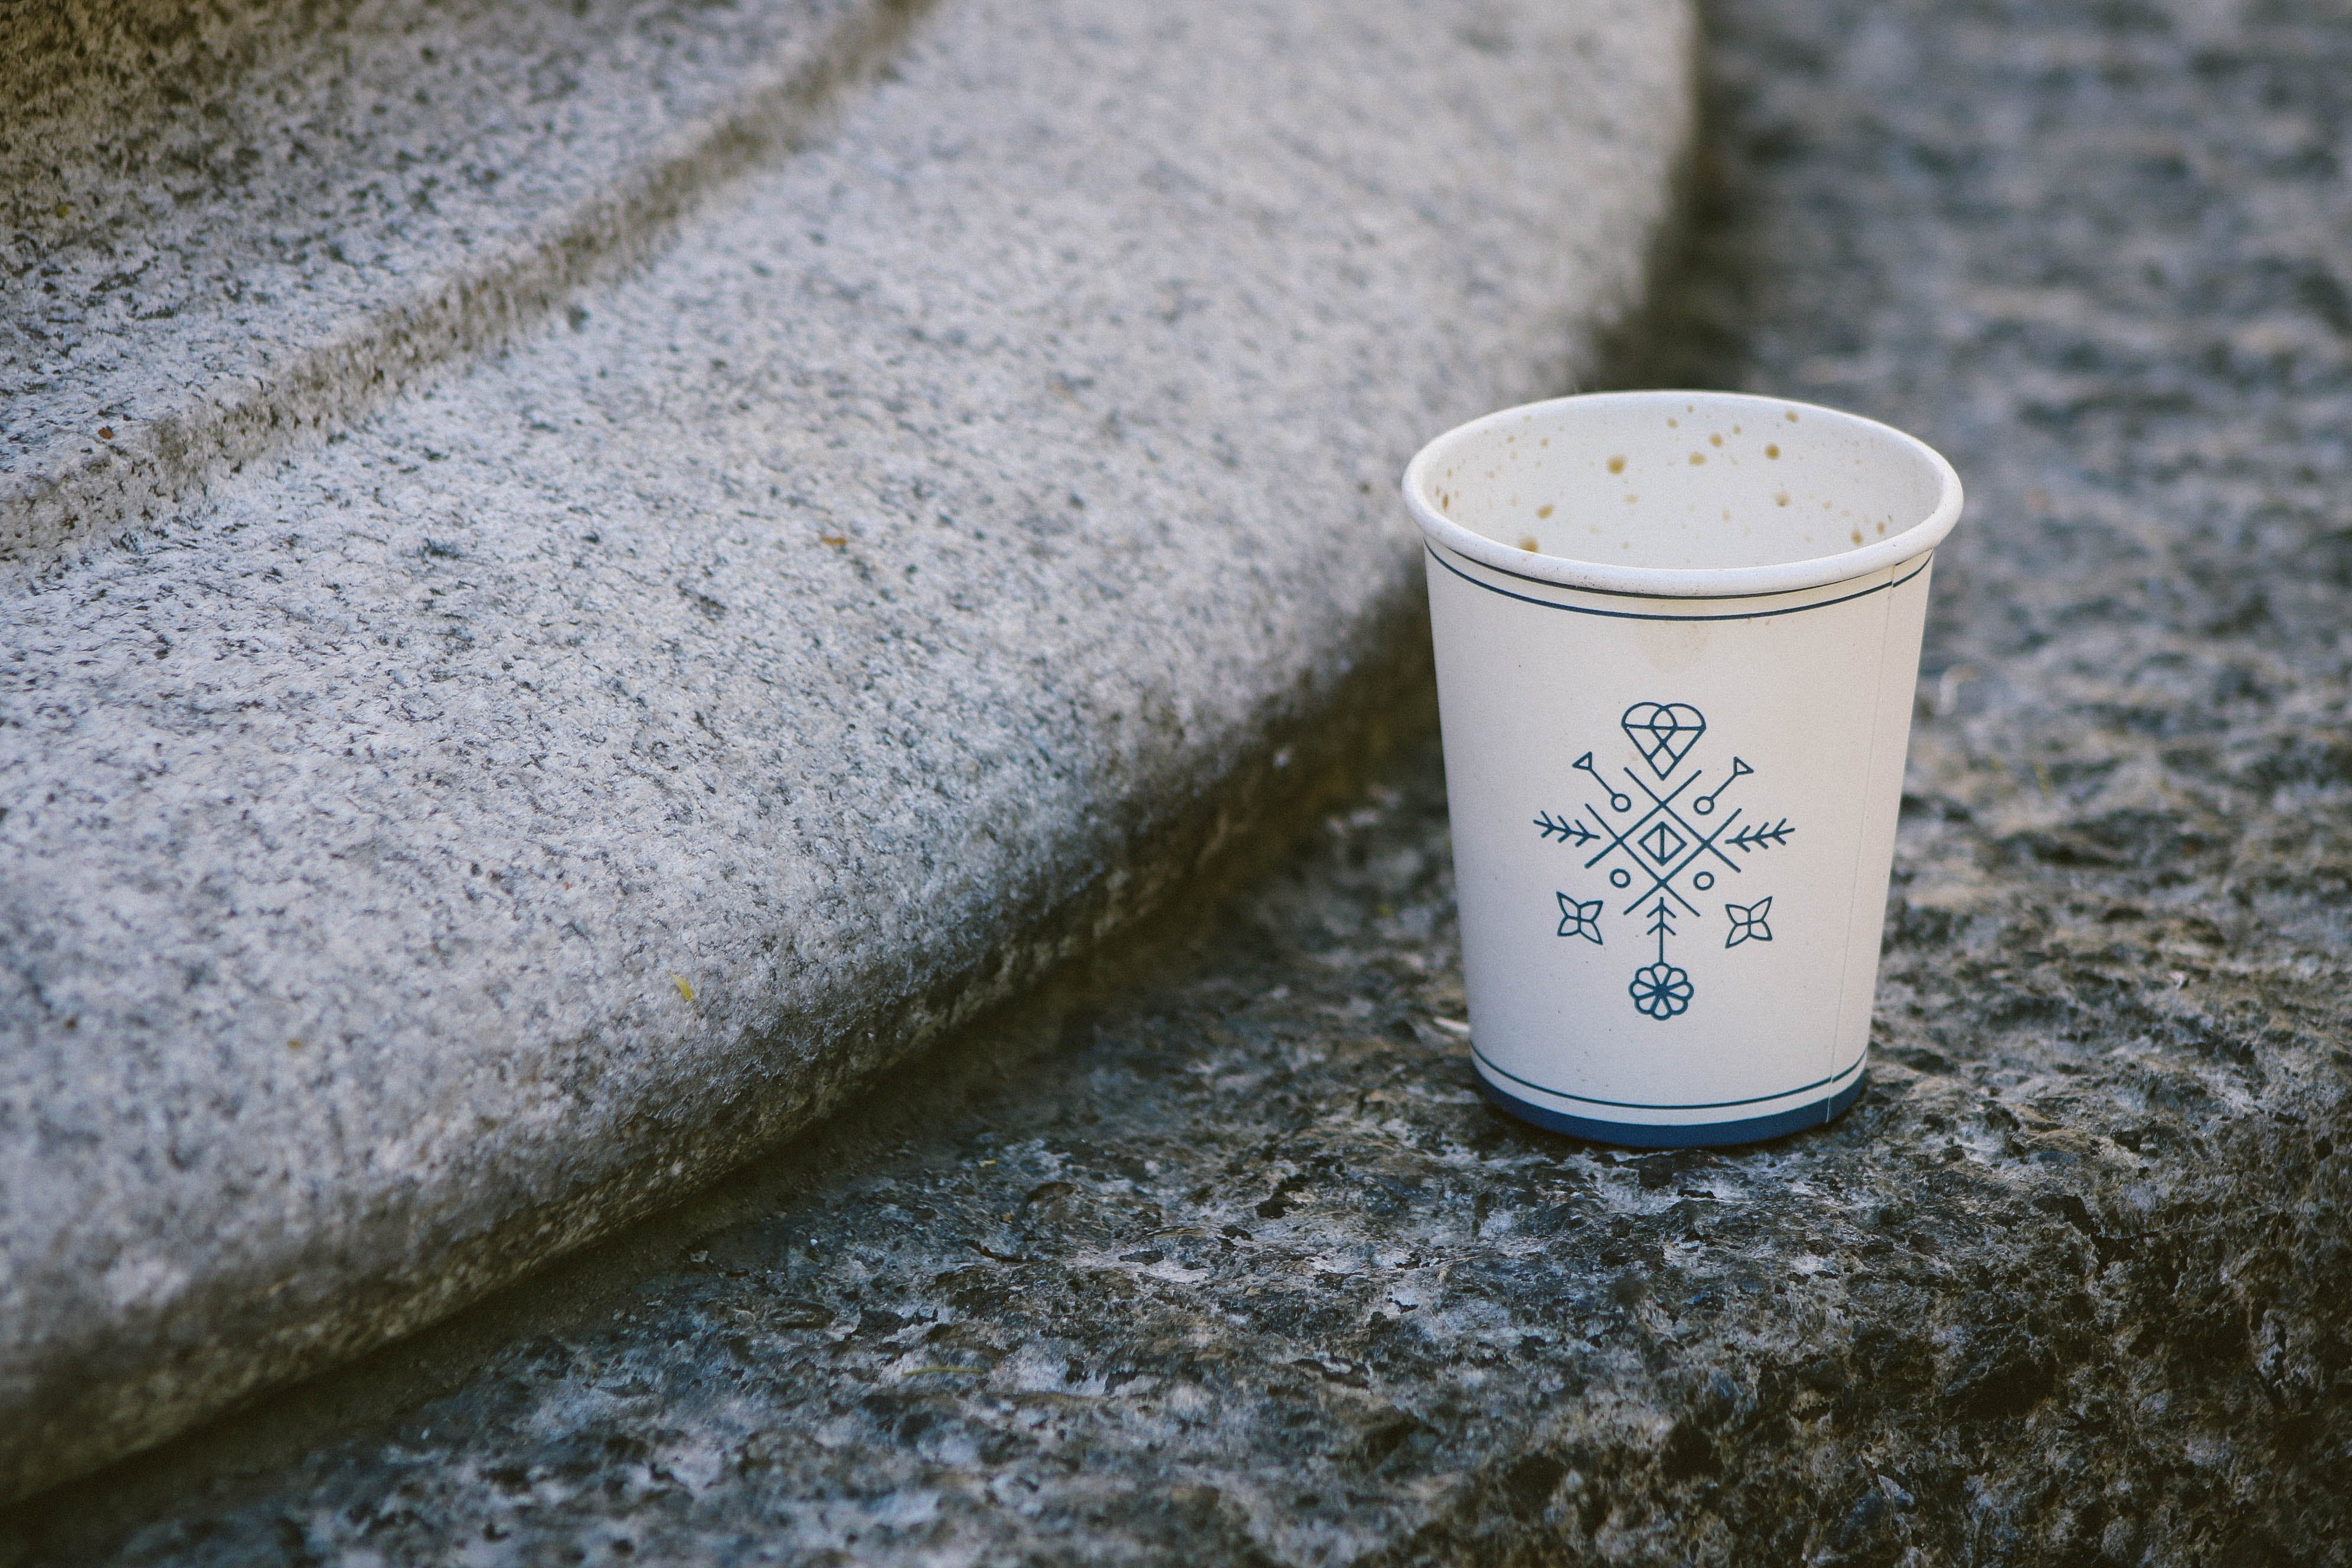 White Disposable Cup On Concrete Surface